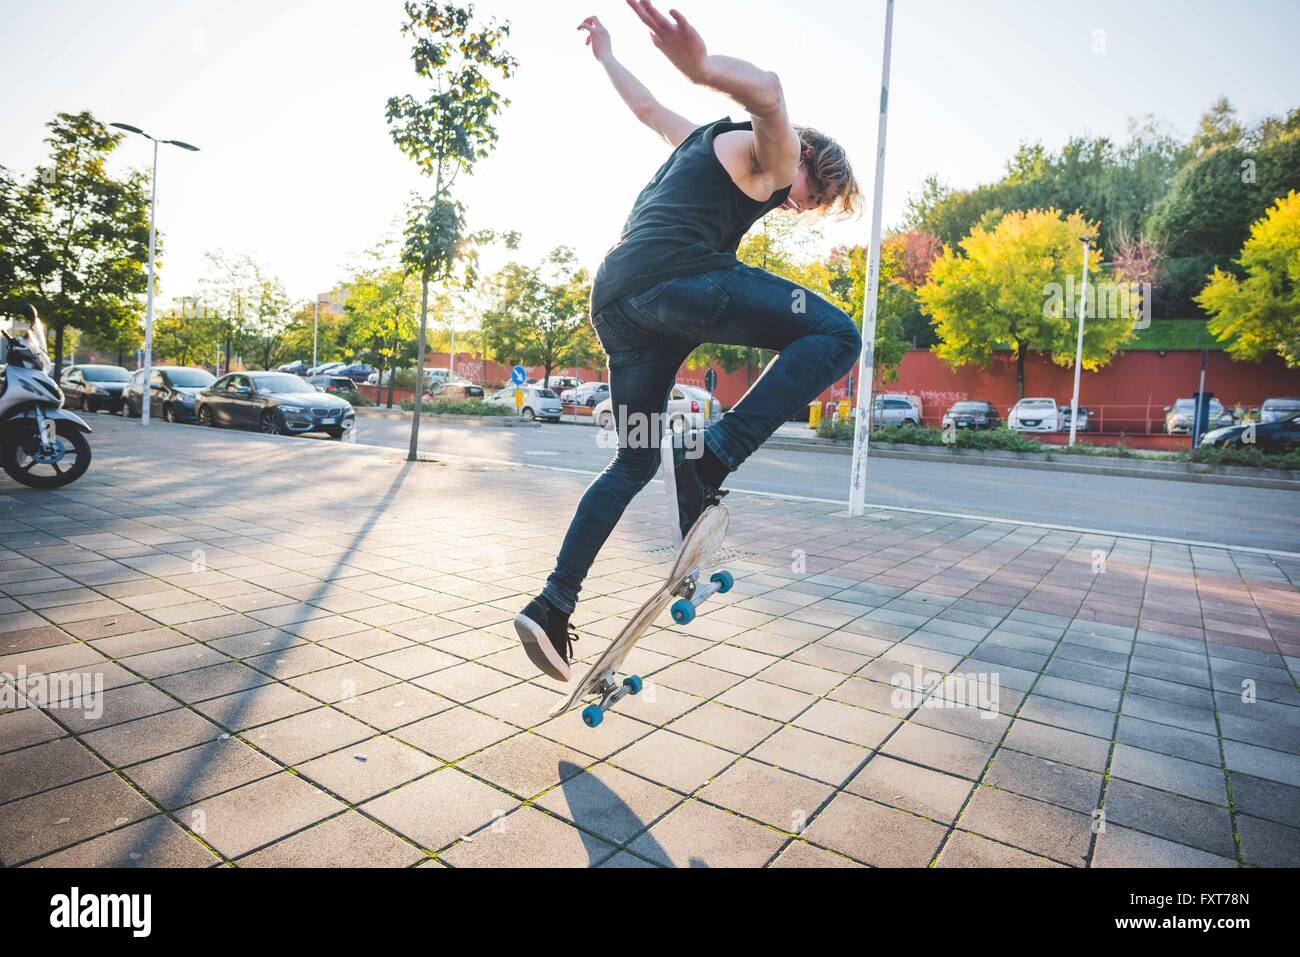 Young male urban skateboarder doing skateboarding jump trick on sidewalk - Stock Image